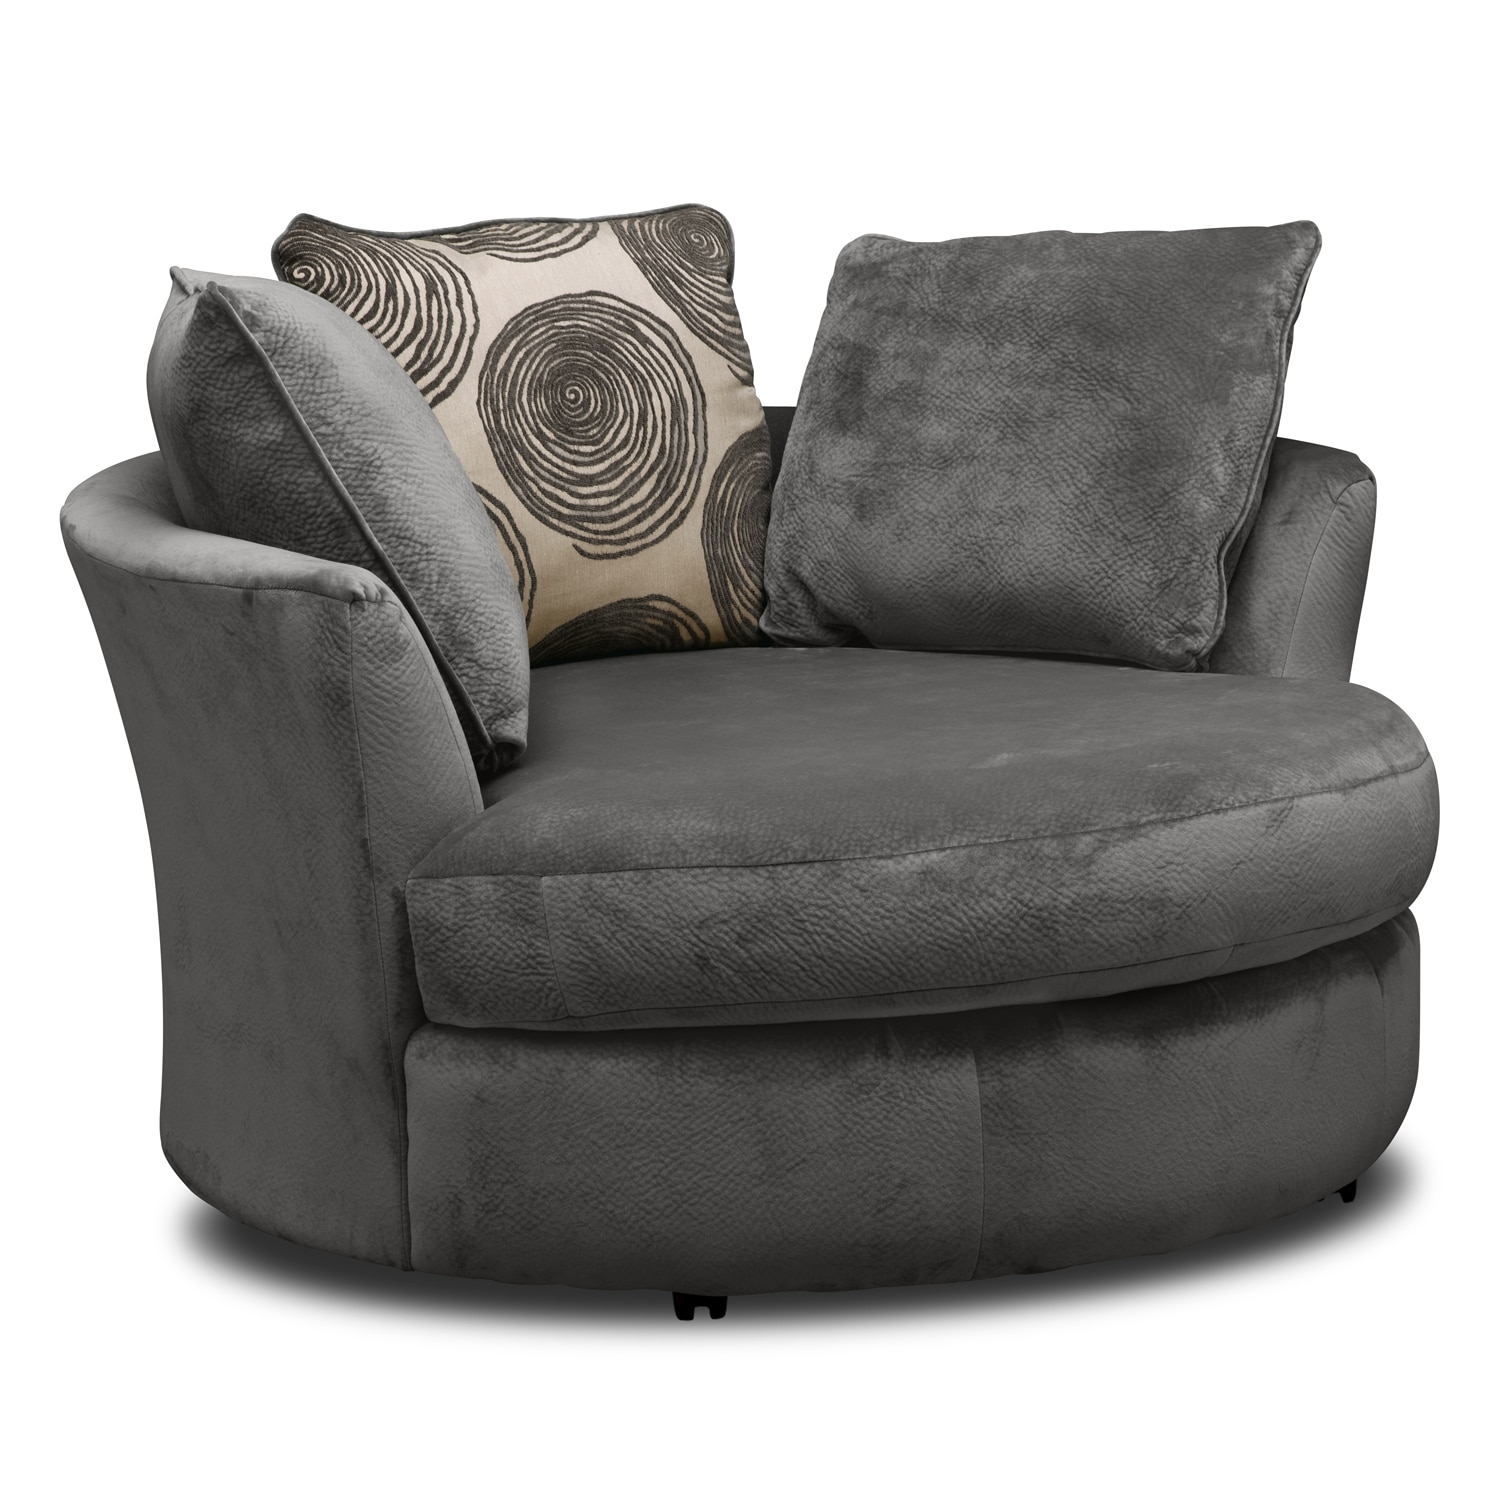 Swival Chairs Cordelle Swivel Chair Gray Value City Furniture